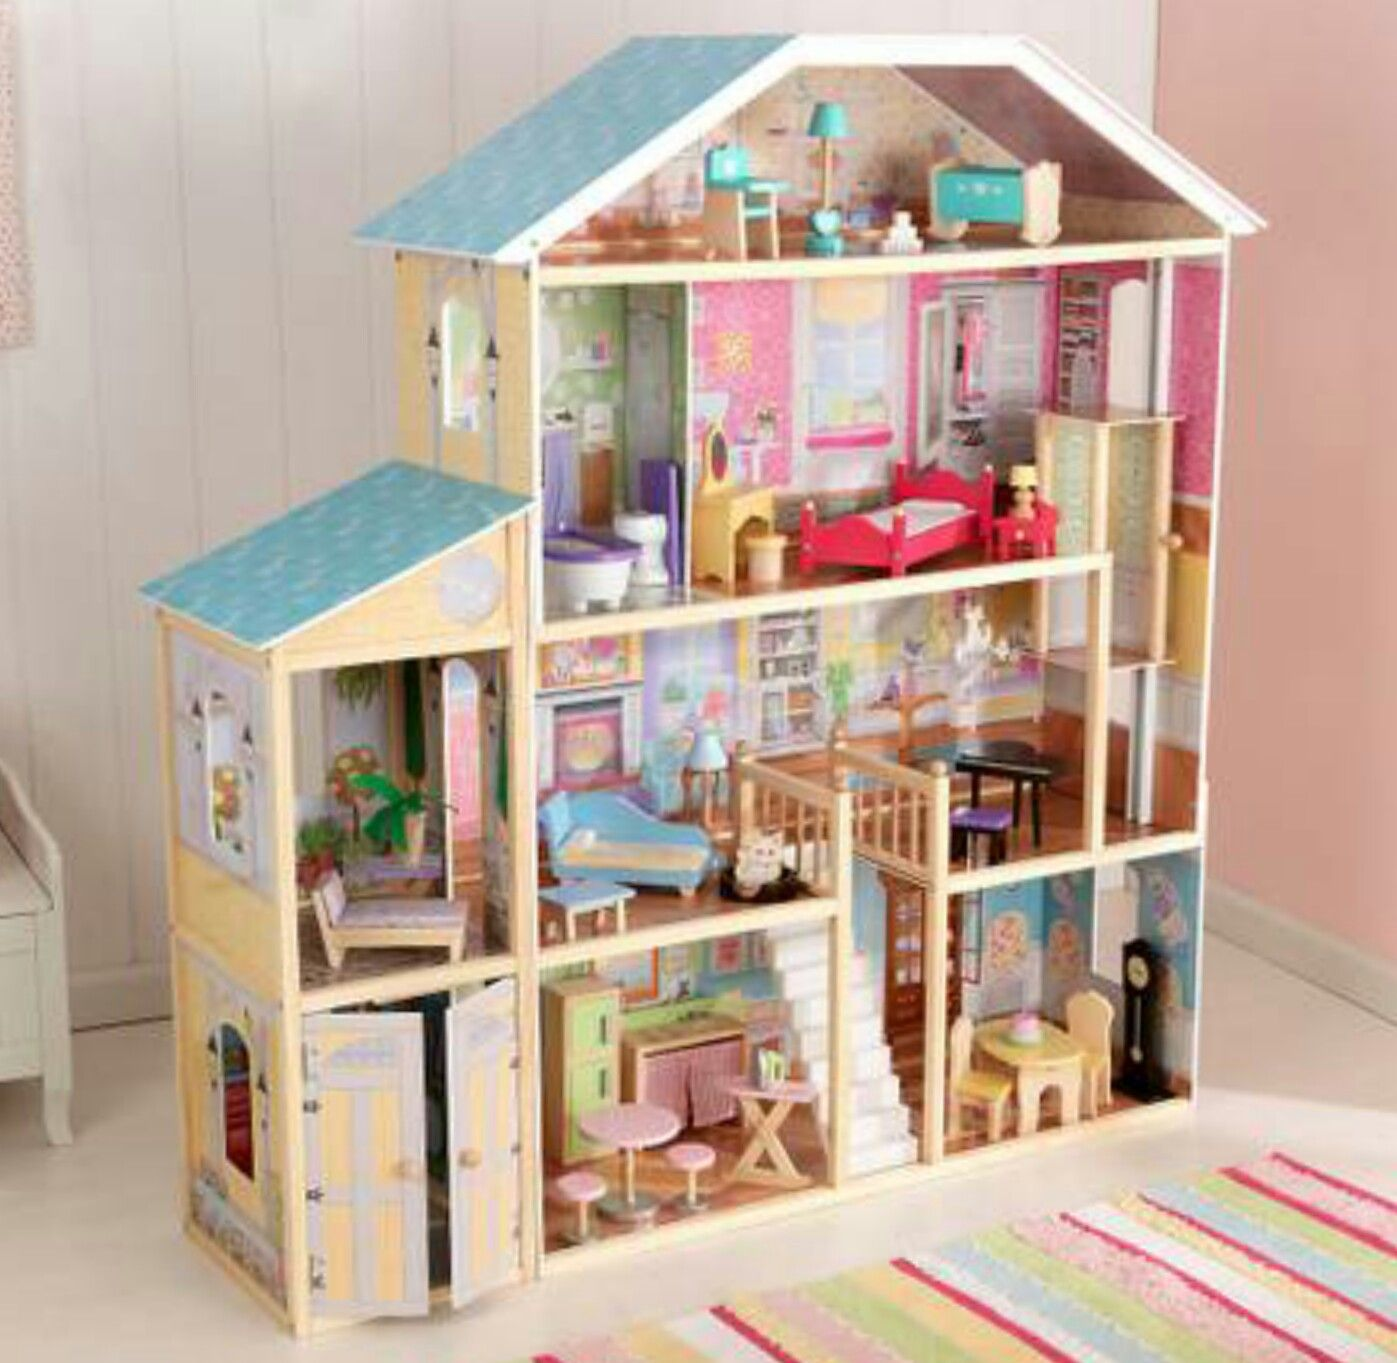 Barbie mansion by Kidkraft made into parrot birdcage how it